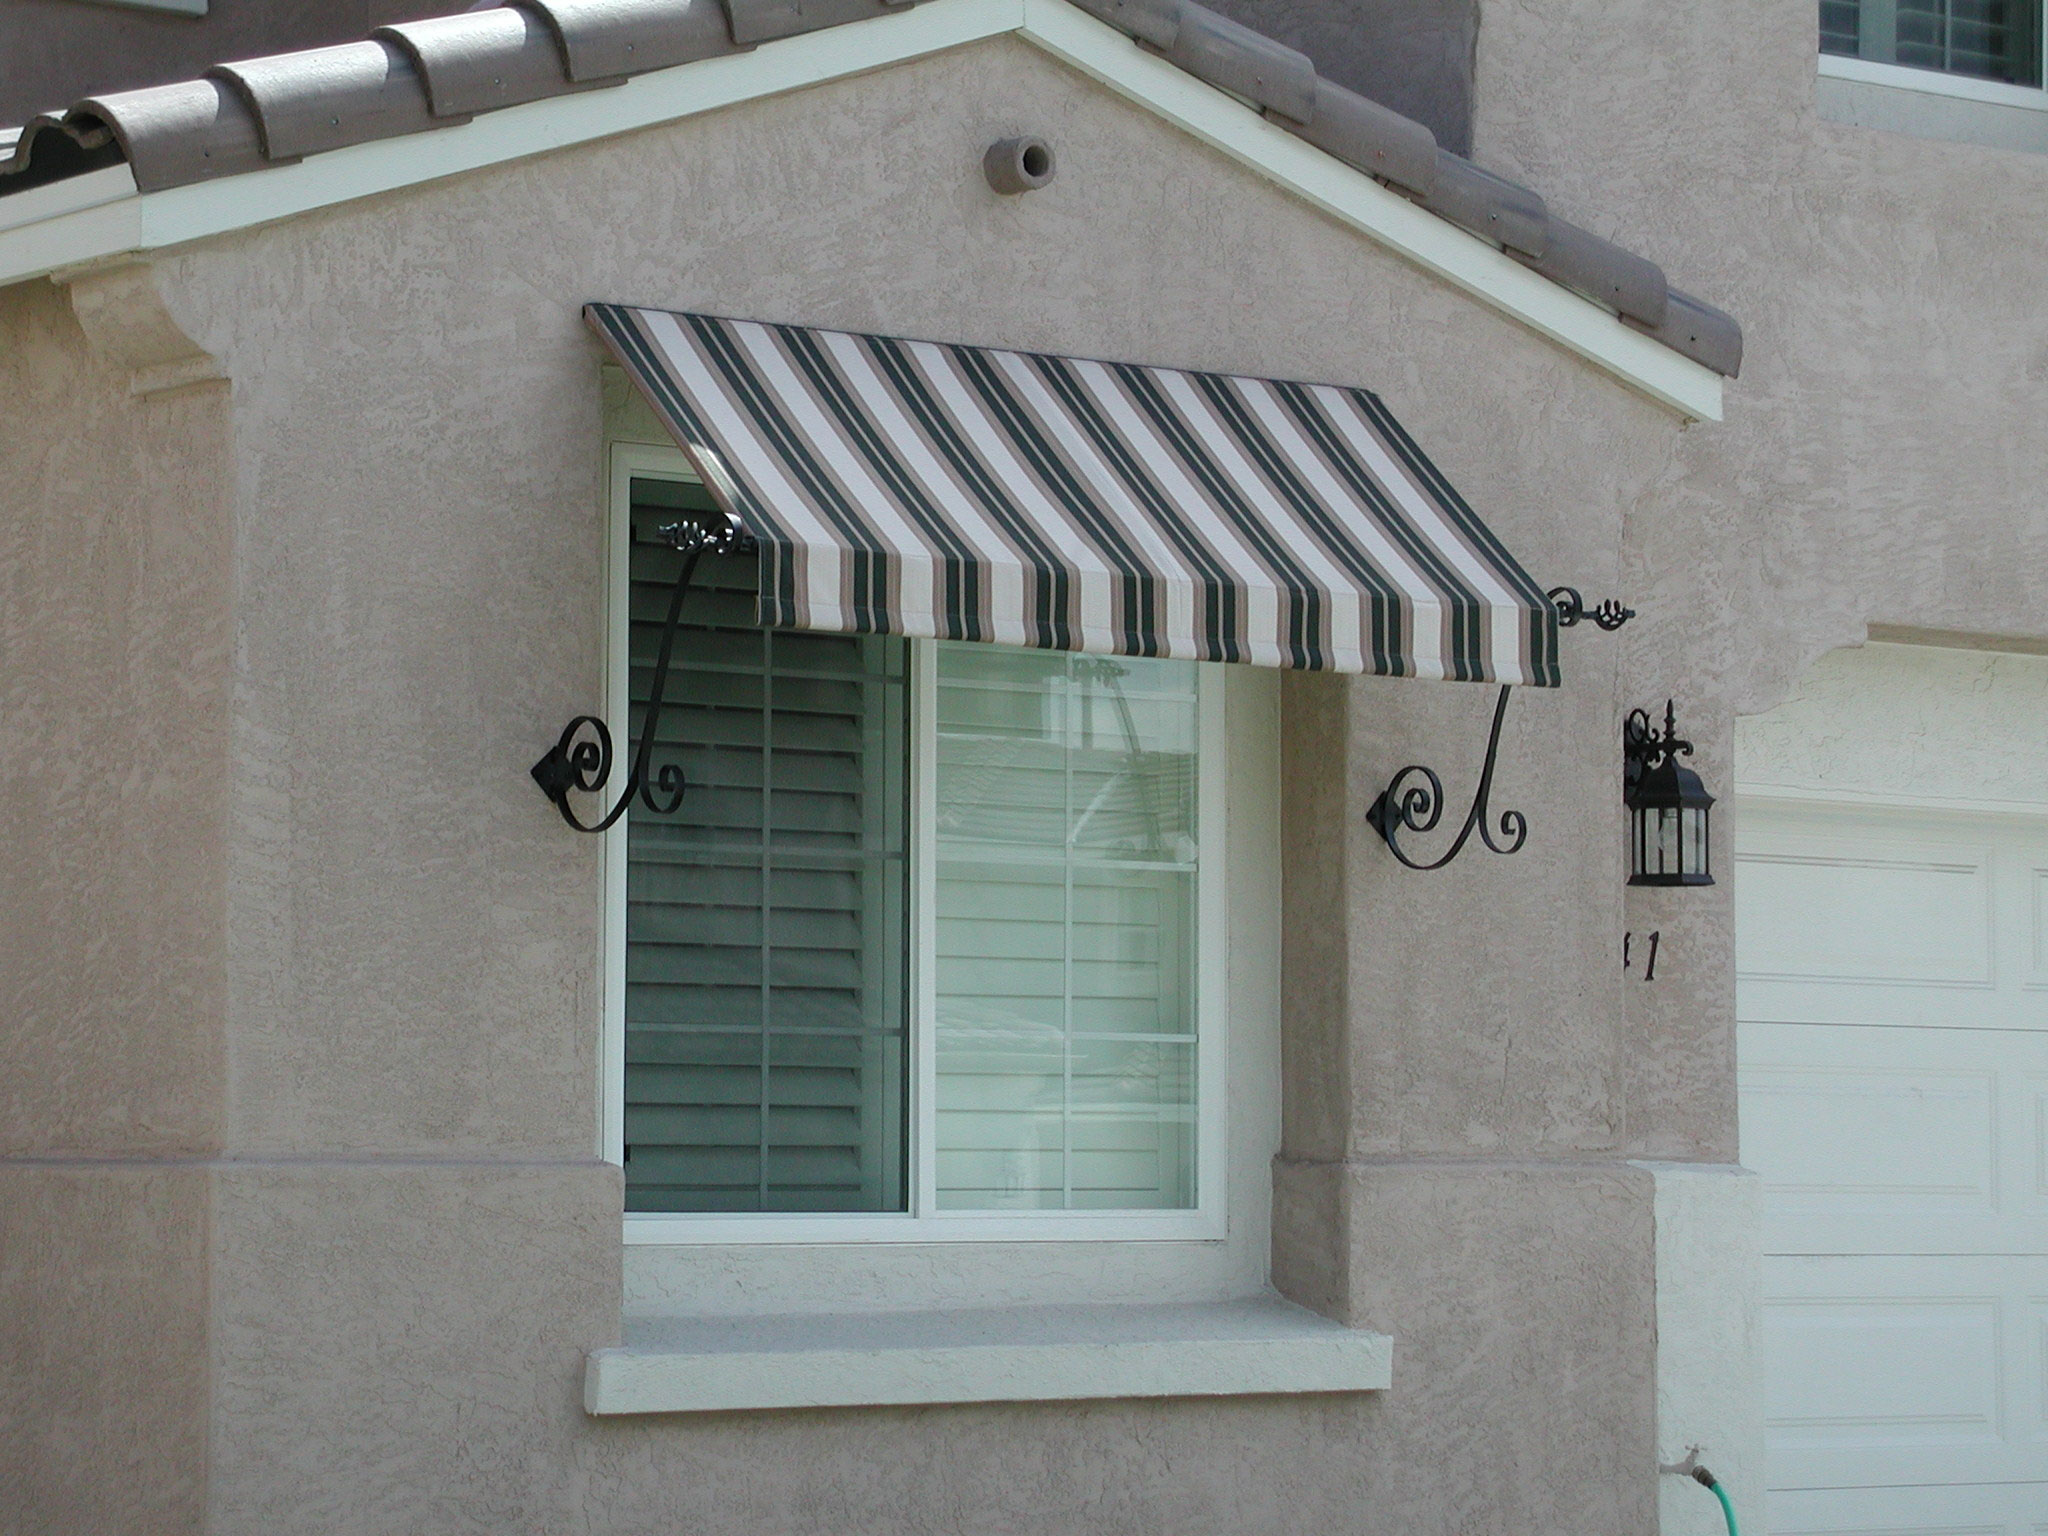 Decorative Iron Welcome To Awning Solutions